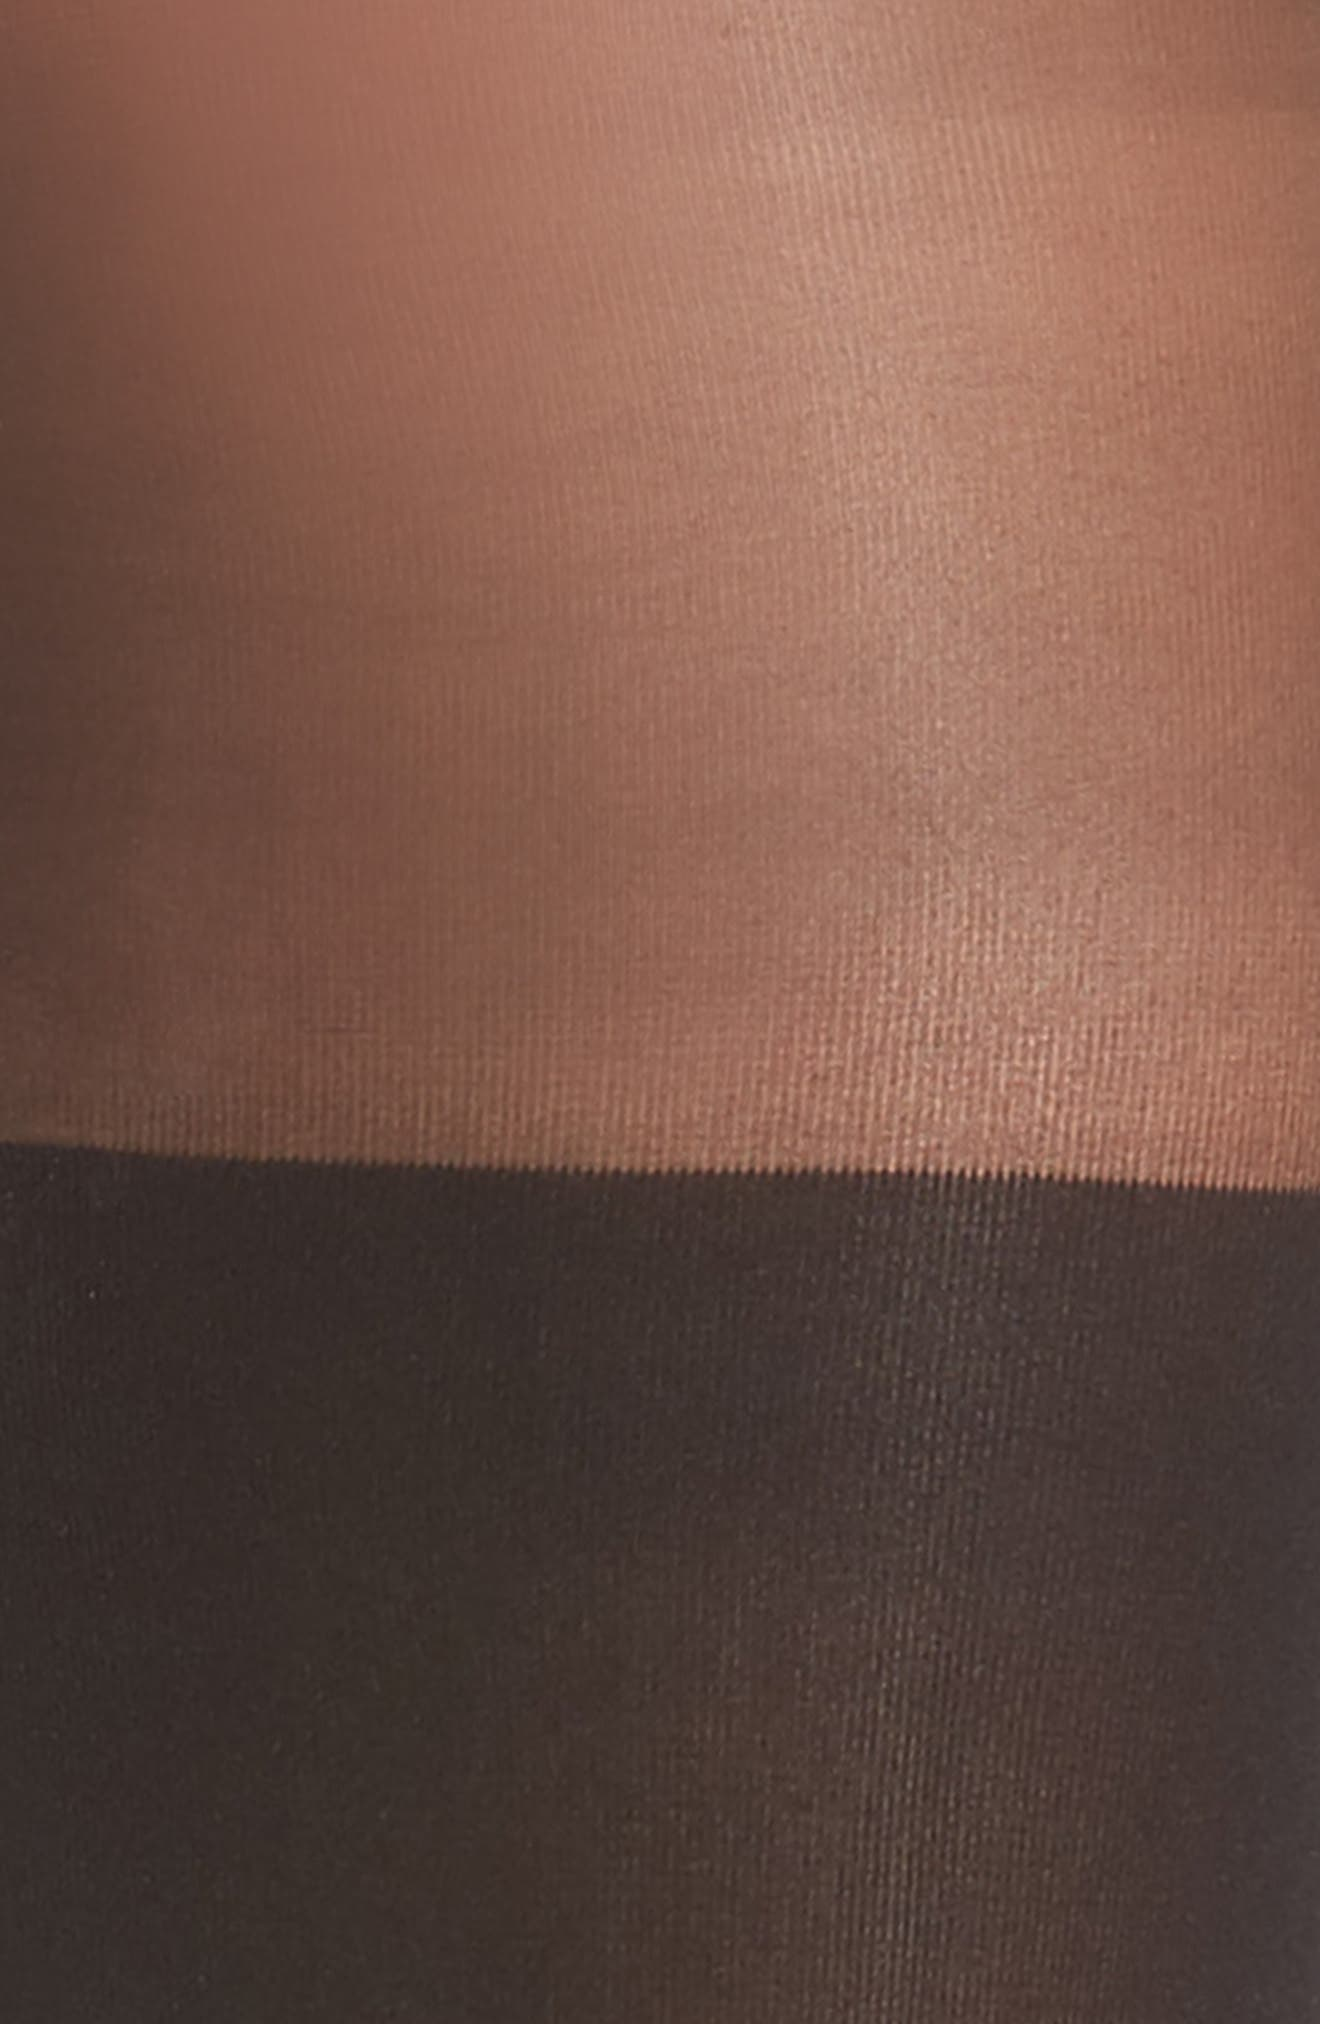 Illusion Thigh High Pantyhose,                             Alternate thumbnail 2, color,